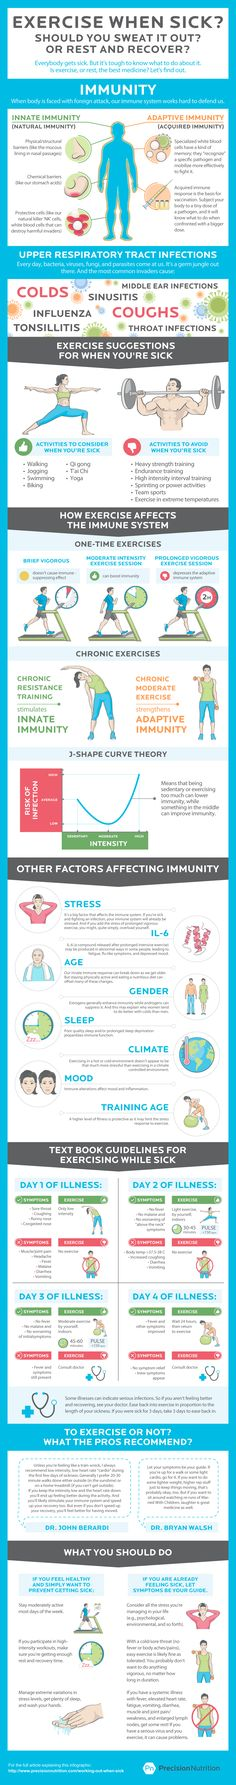 precision nutrition exercise when sick image Should you exercise when sick? [Infographic] How to make working out work for your immunity. Make sure to check out our fitness tips, nutrition info and more at http://www.getyourfittogether.org/